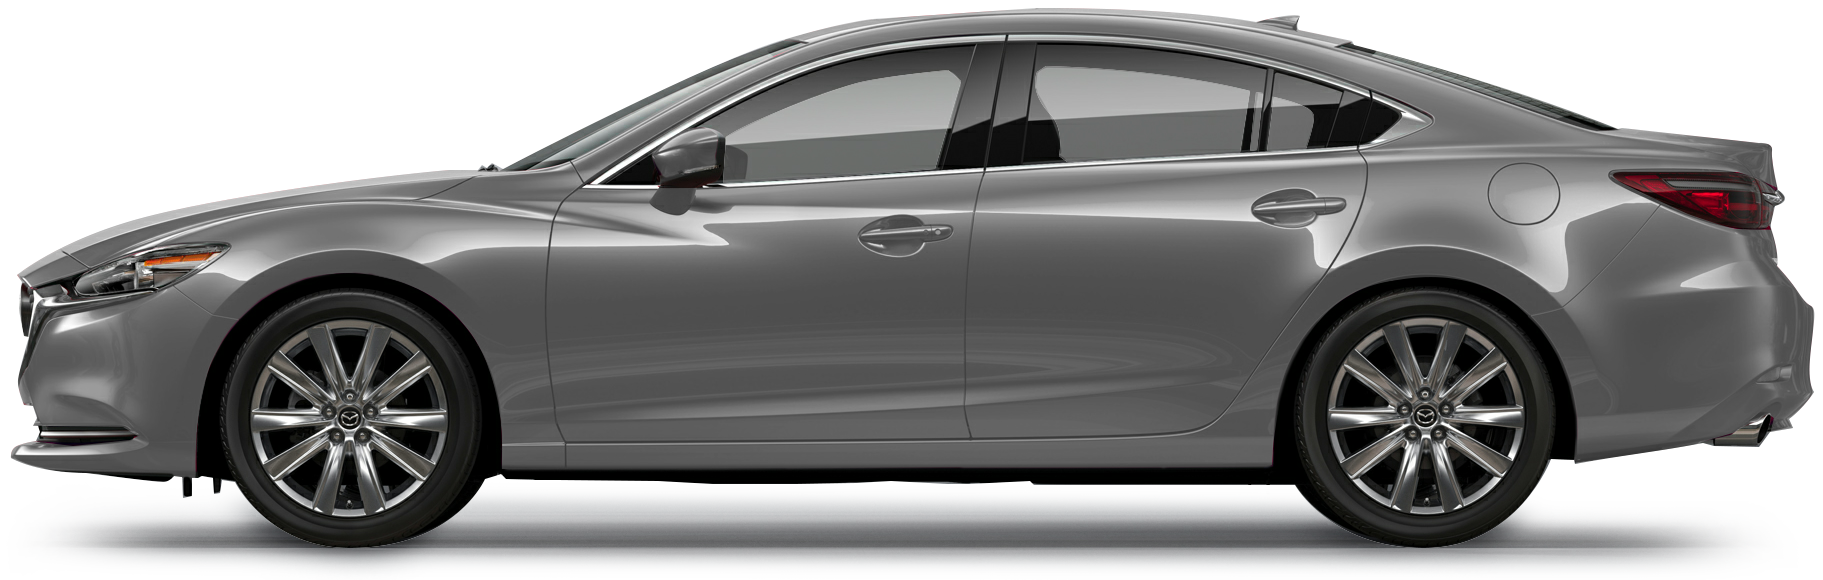 http://images.dealer.com/ddc/vehicles/2020/Mazda/Mazda6/Sedan/trim_Grand_Touring_01f93f/perspective/side-left/2019_24.png